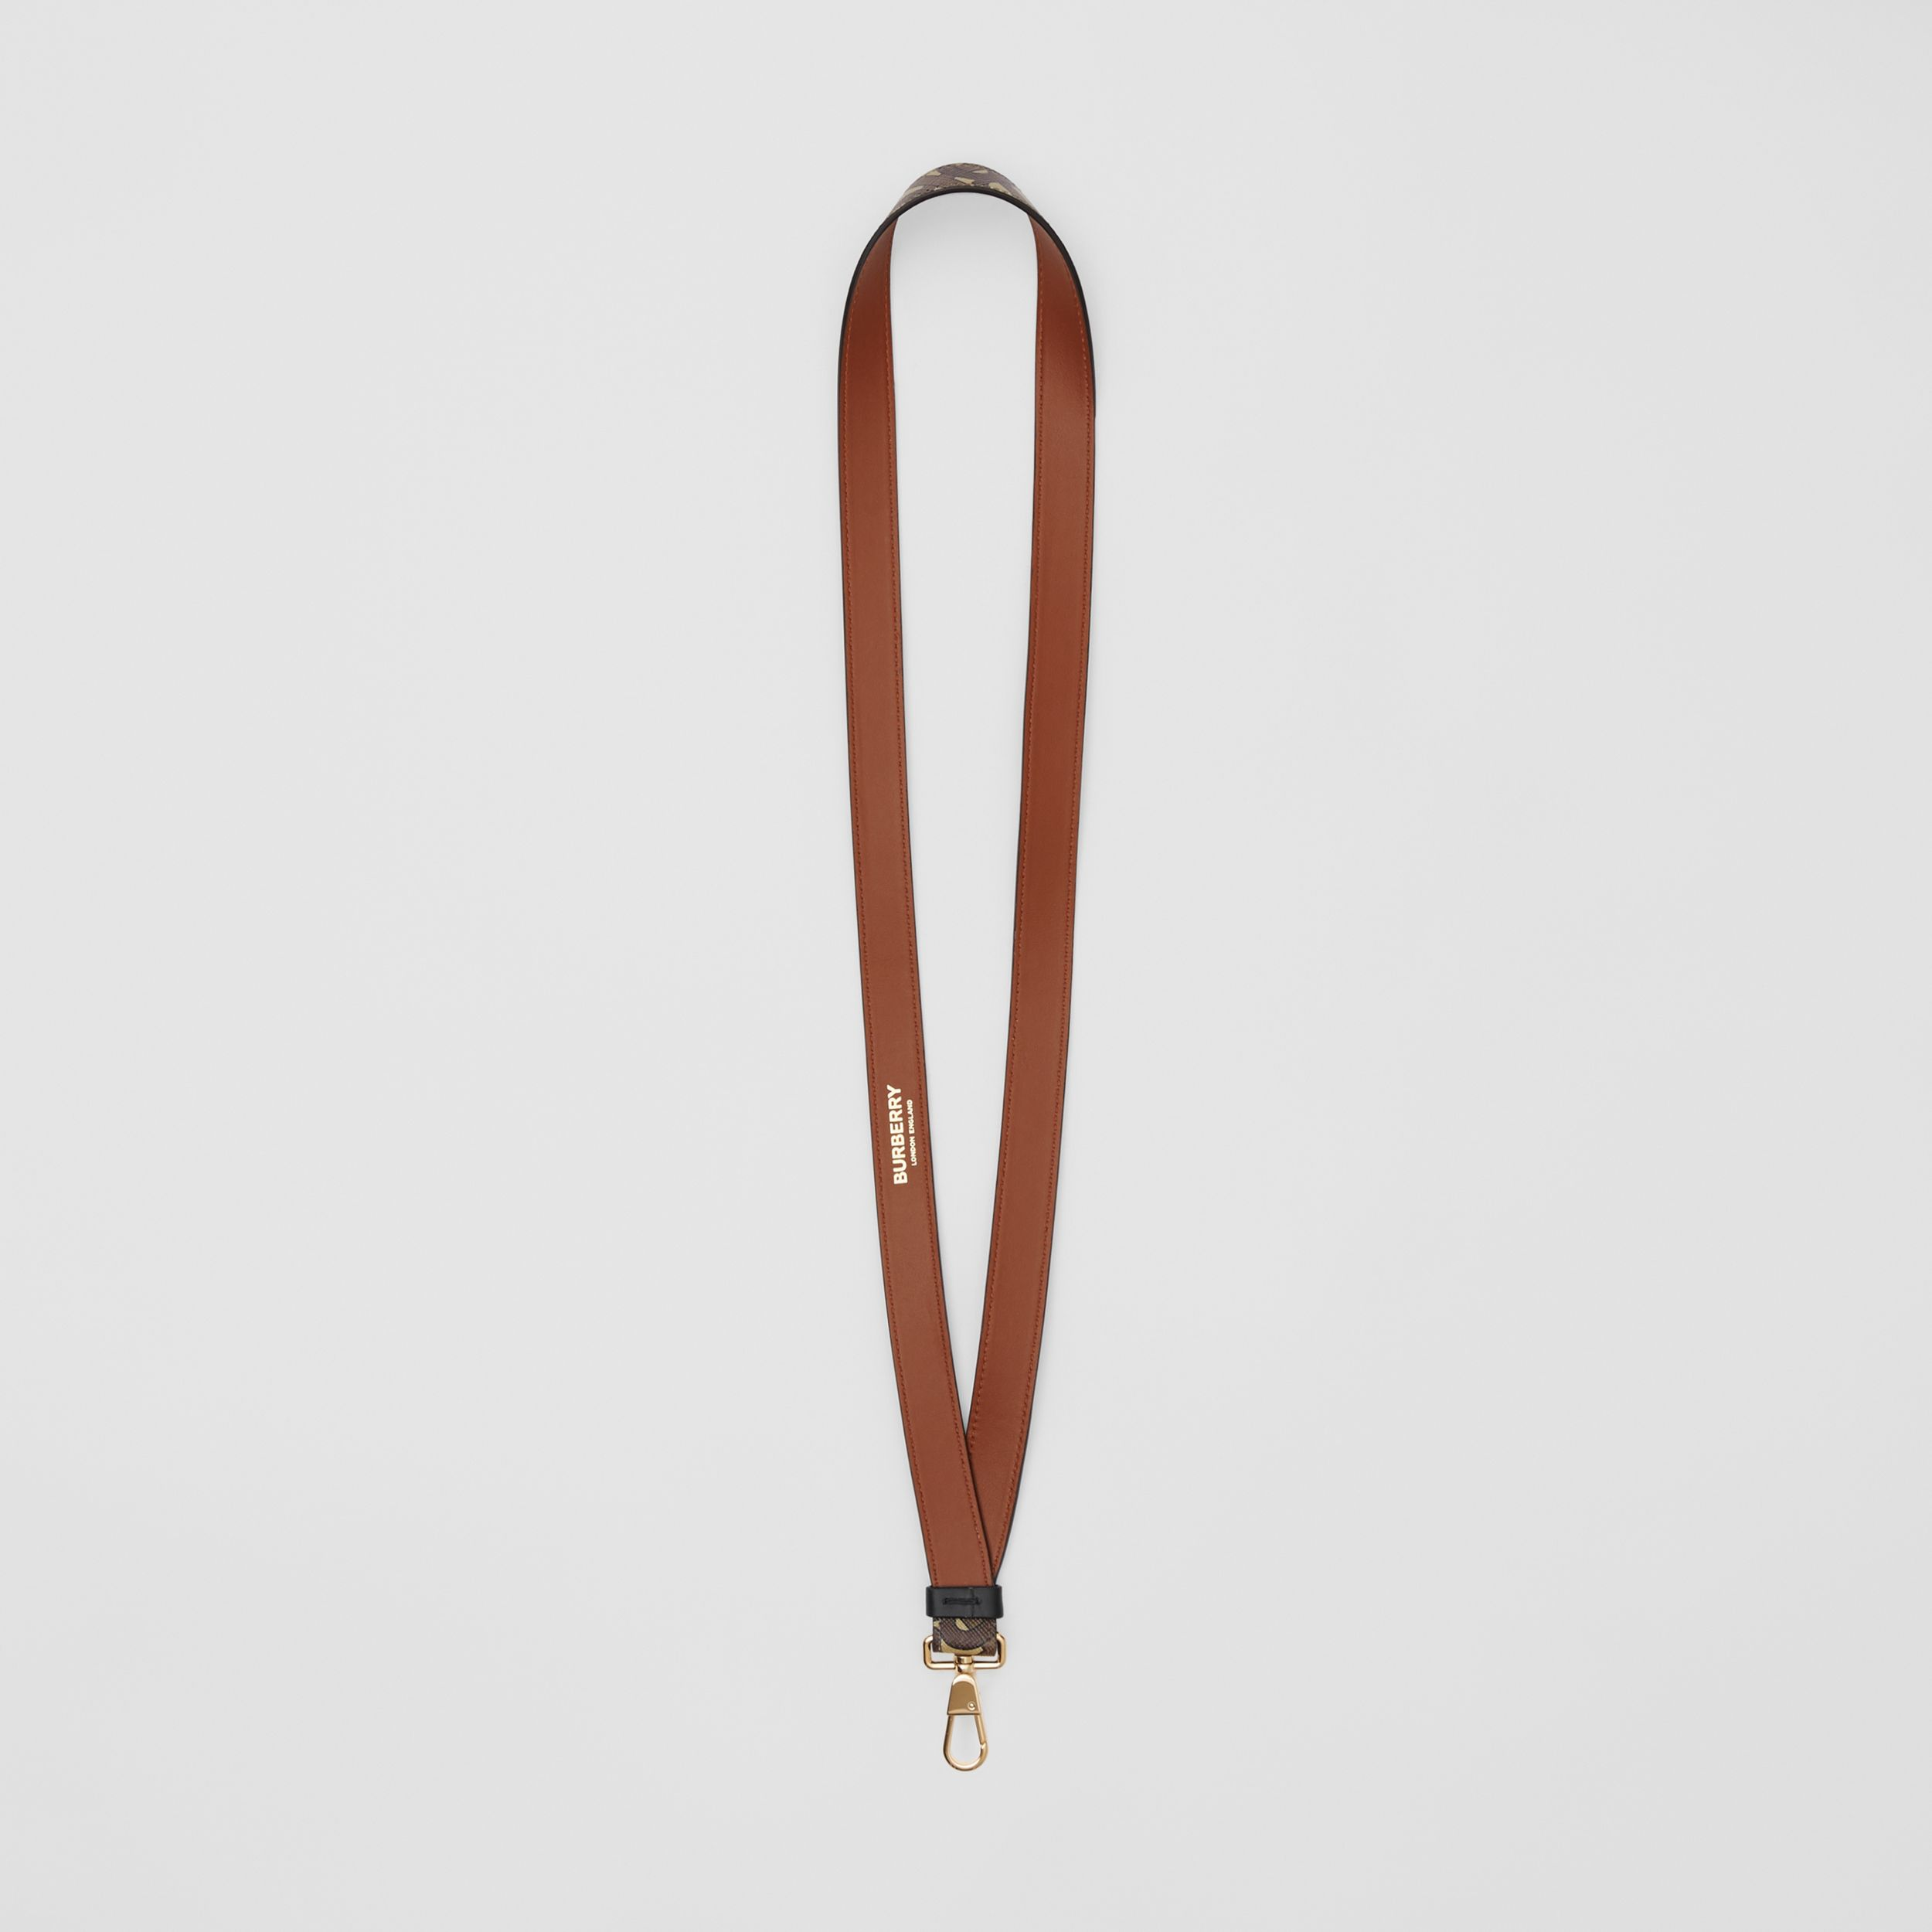 Monogram Print E-canvas and Leather Lanyard in Bridle Brown - Men | Burberry Hong Kong S.A.R. - 4